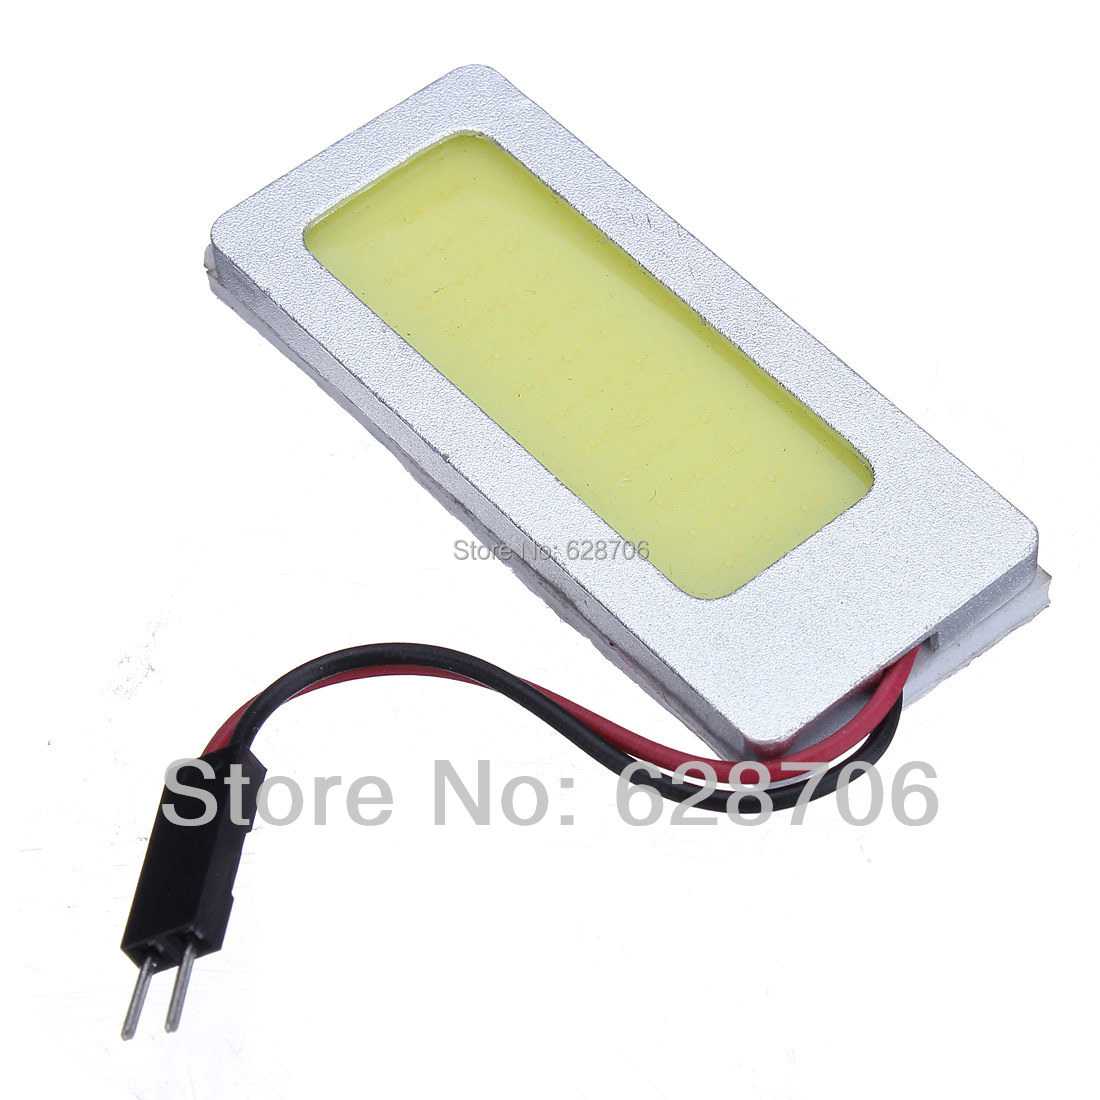 High Power 8W White 36 chips COB LED Dome Reading Light Panel Interior Bulb Lamp T10 Festoon BA9S DC 12V image